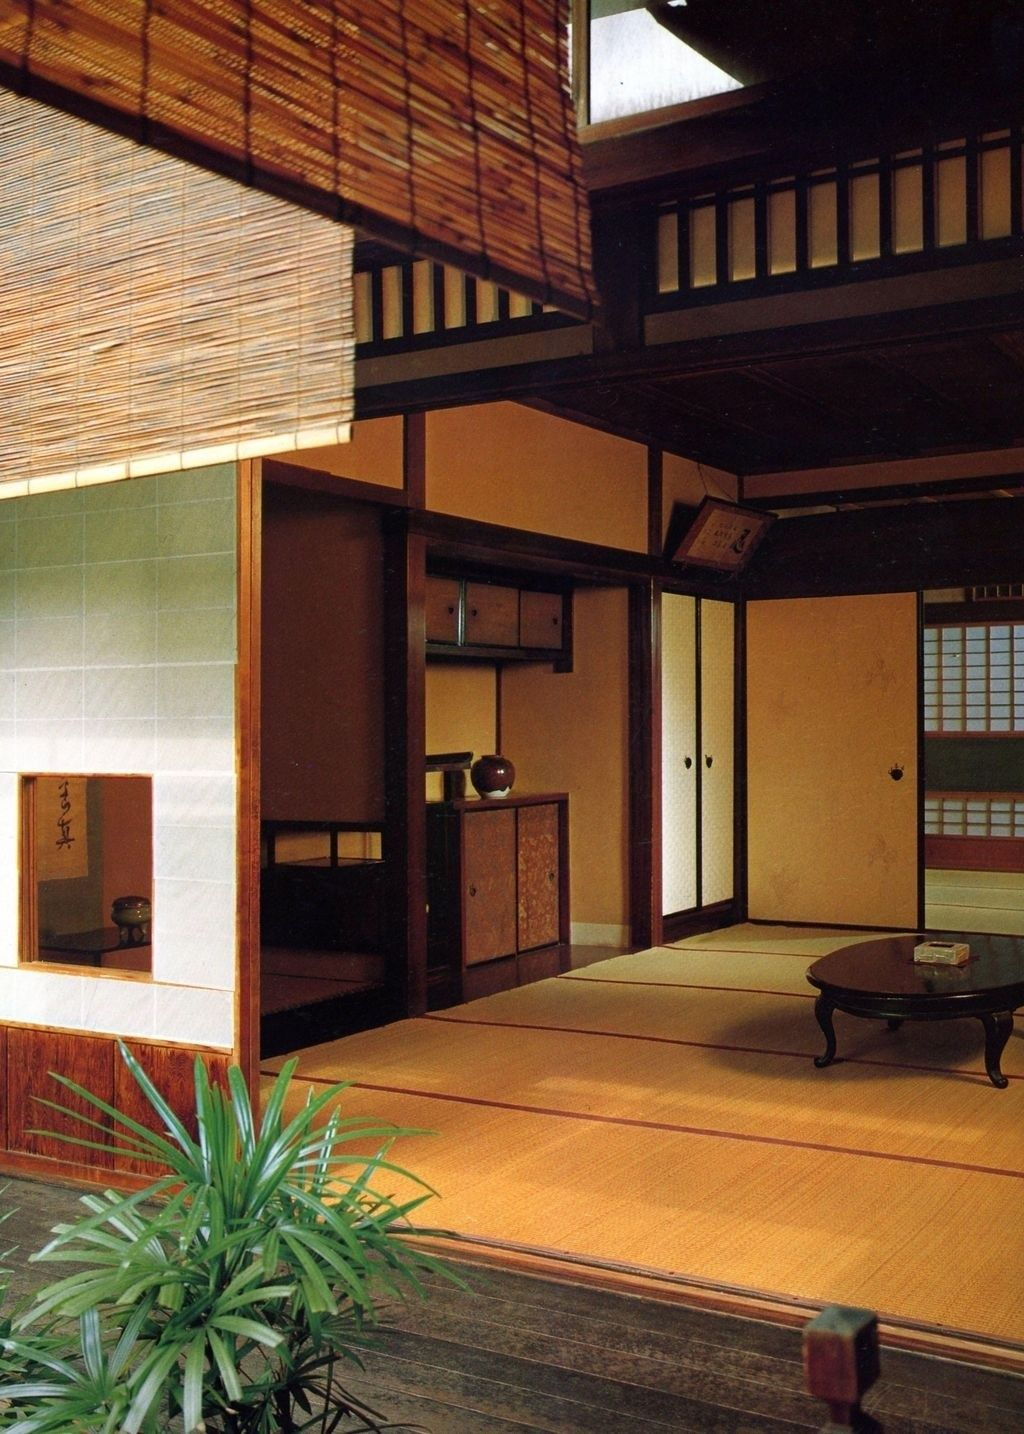 Awesome Japanese Living Room Decor Ideas 47 Traditional Japanese House Japanese Living Room Decor Japanese Living Room